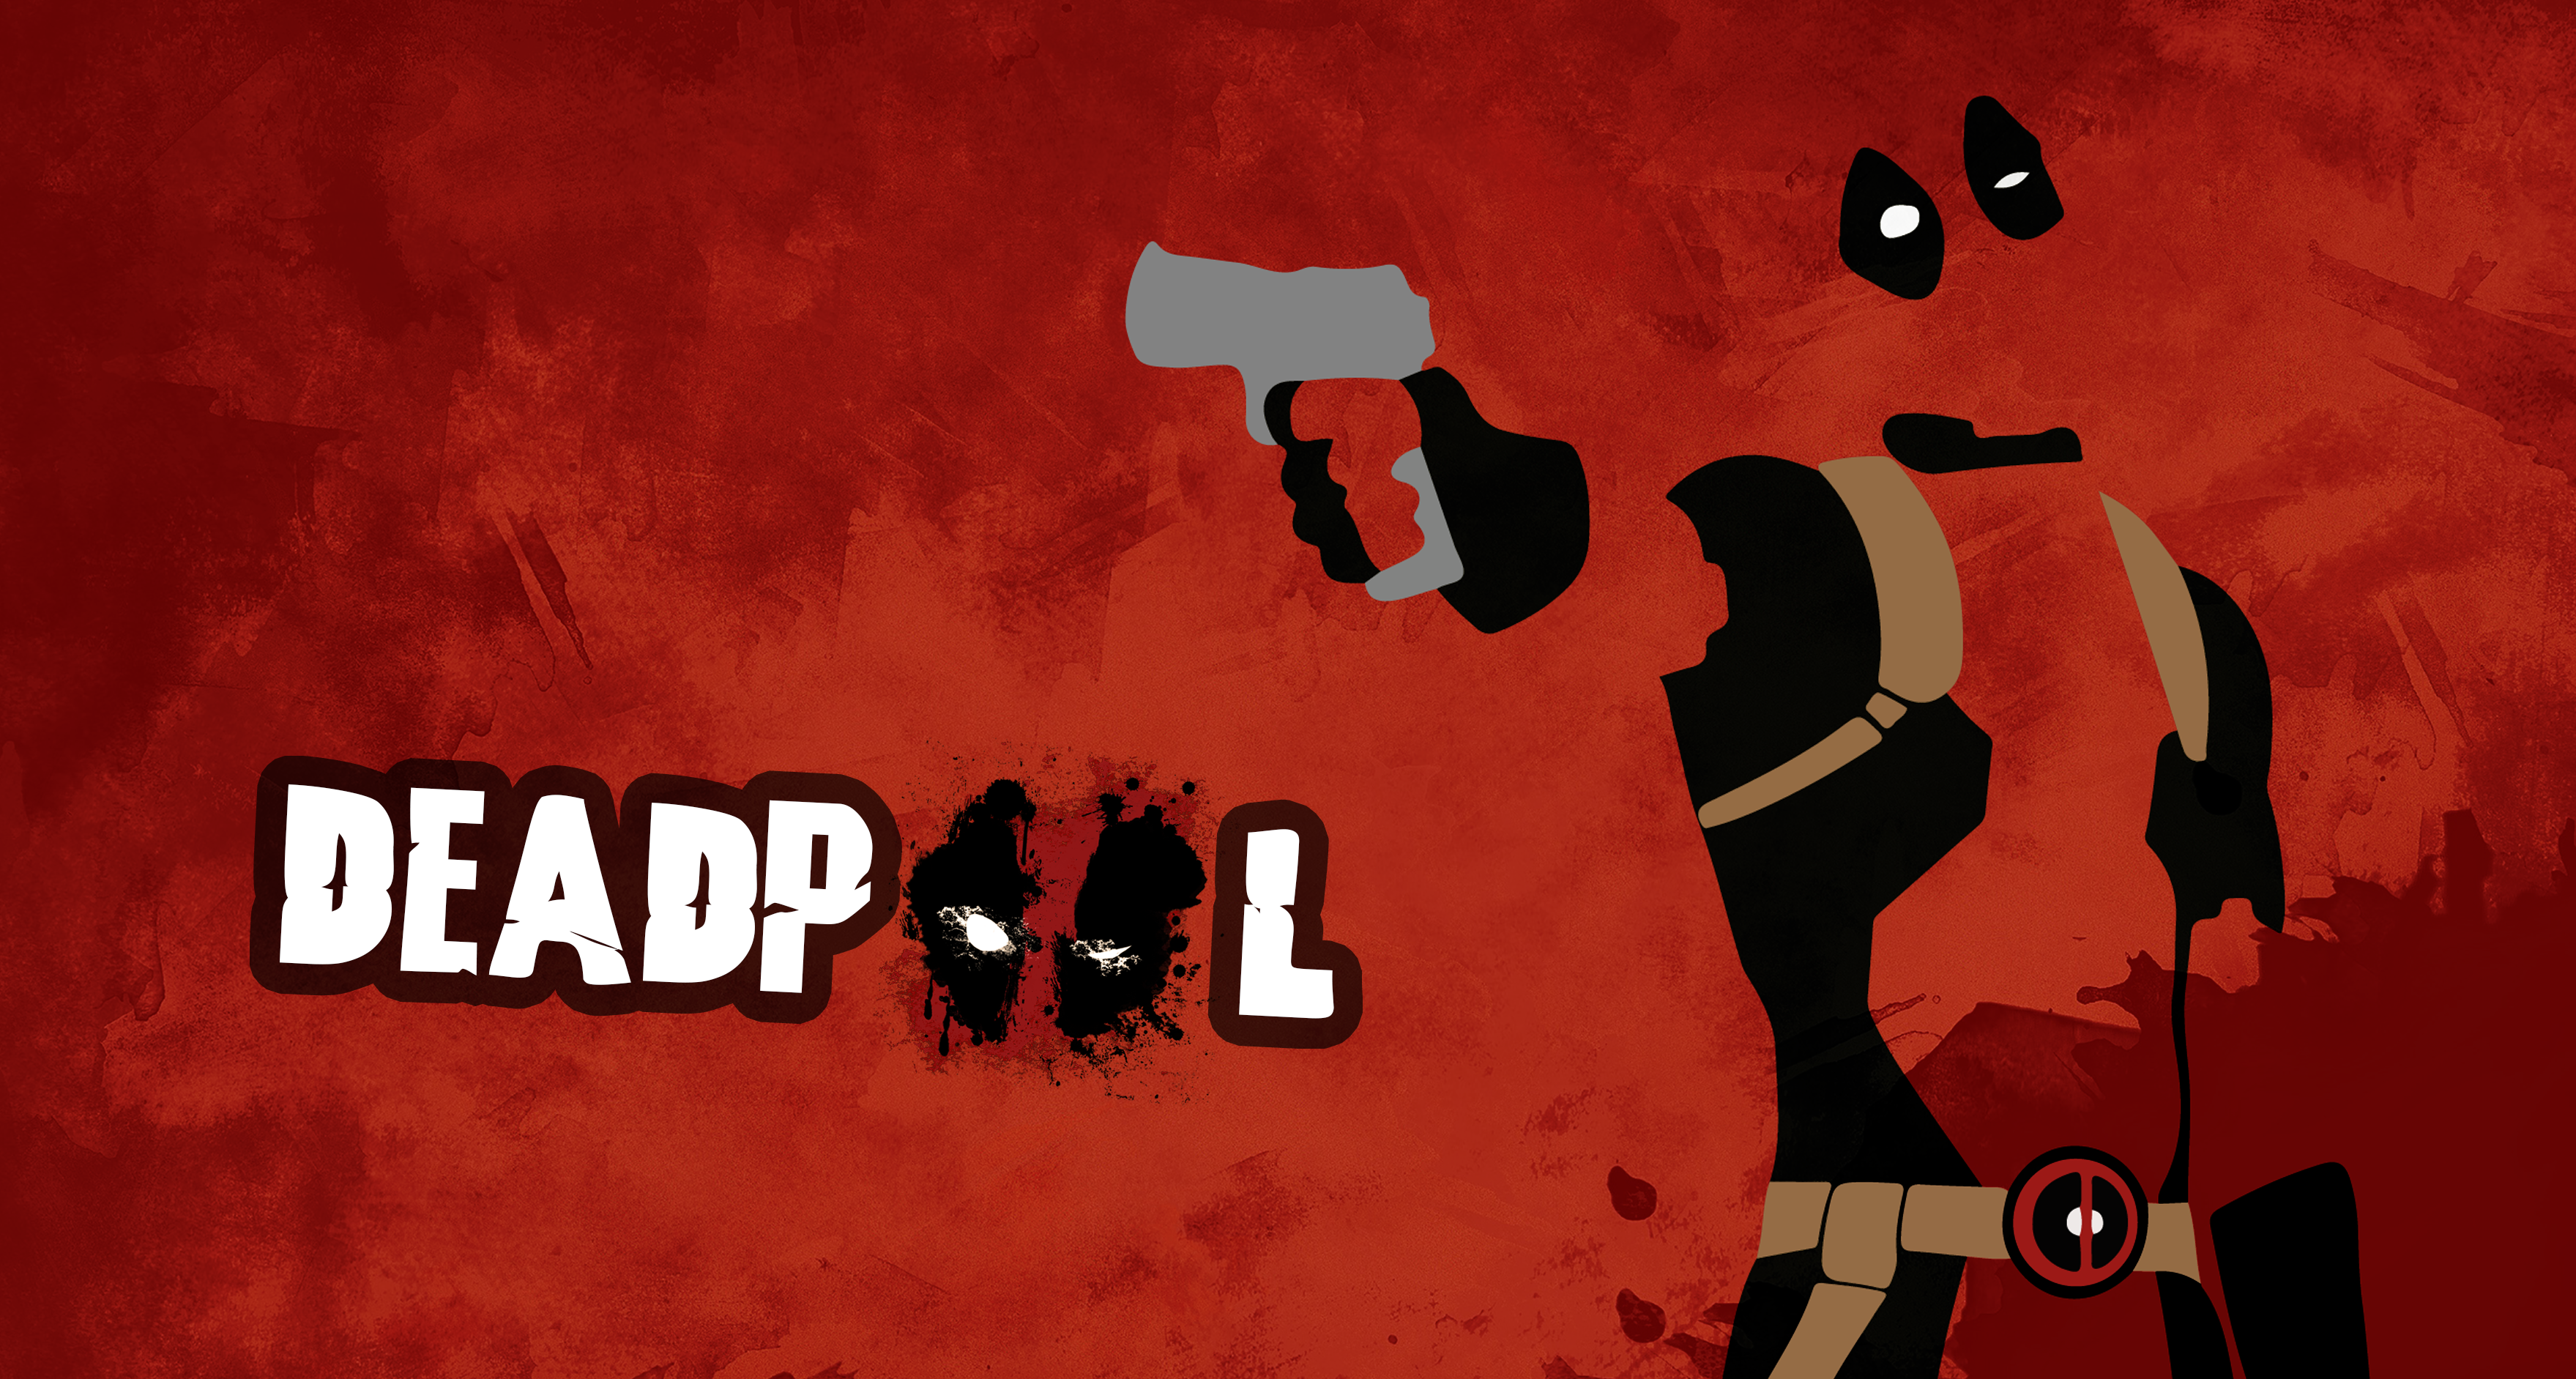 deadpool_wallpaper_desktop-background